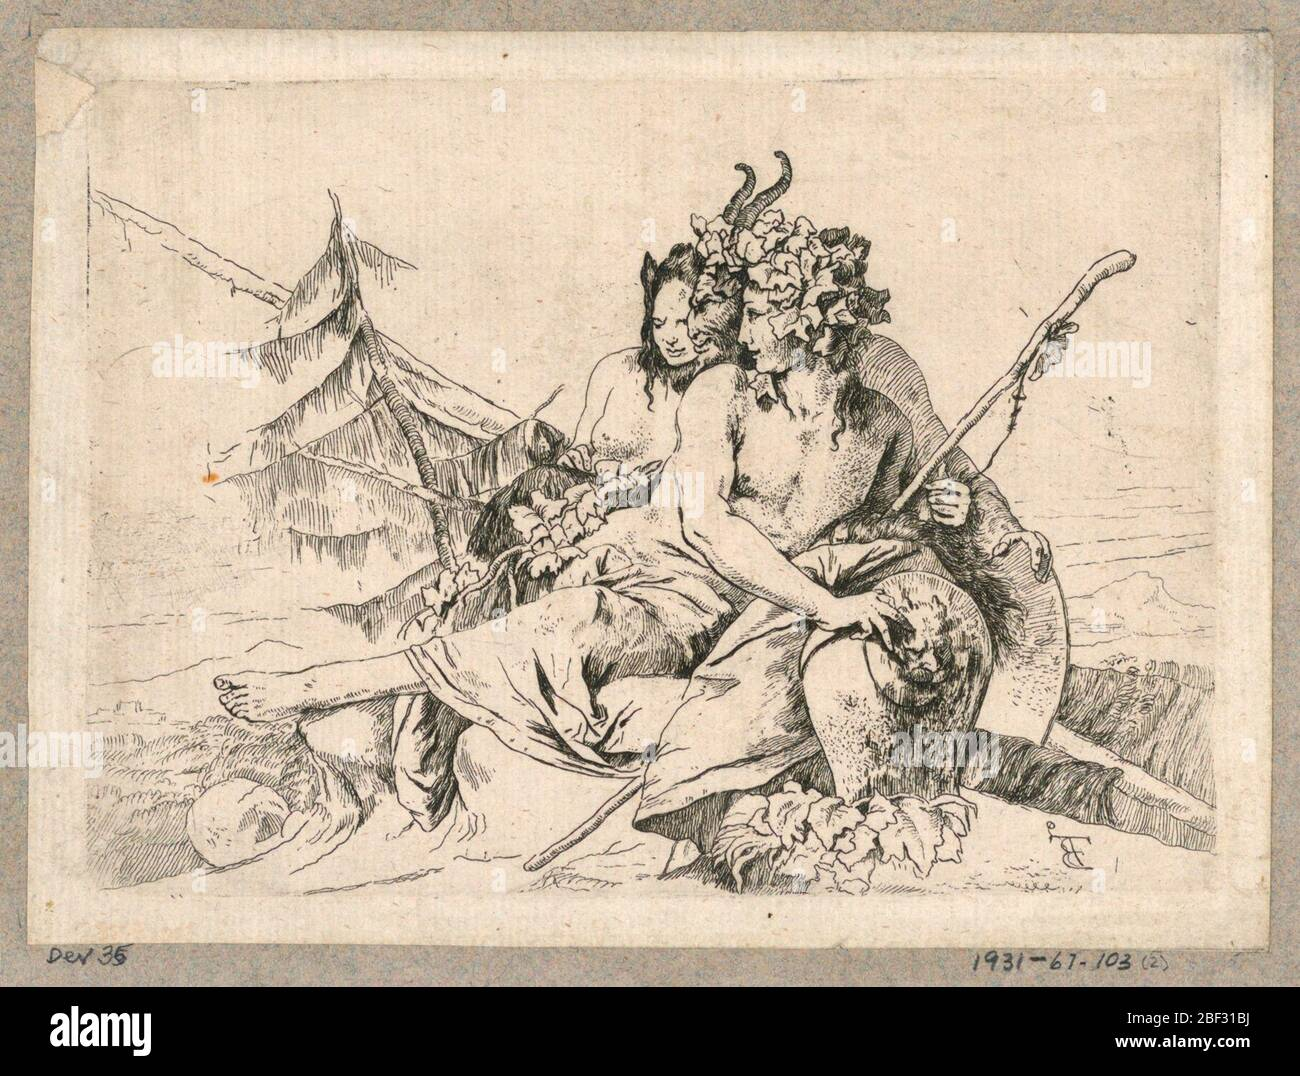 Copy of Bacchante Satyr and Female Faun from the series Scherzi di Fantasia. In the center, a compact group of a bacchante, a satyr and a female faun. They face left. The bacchante holds a thyrsus in her left hand and her right hand rests on a vase. In the background, trees. Stock Photo